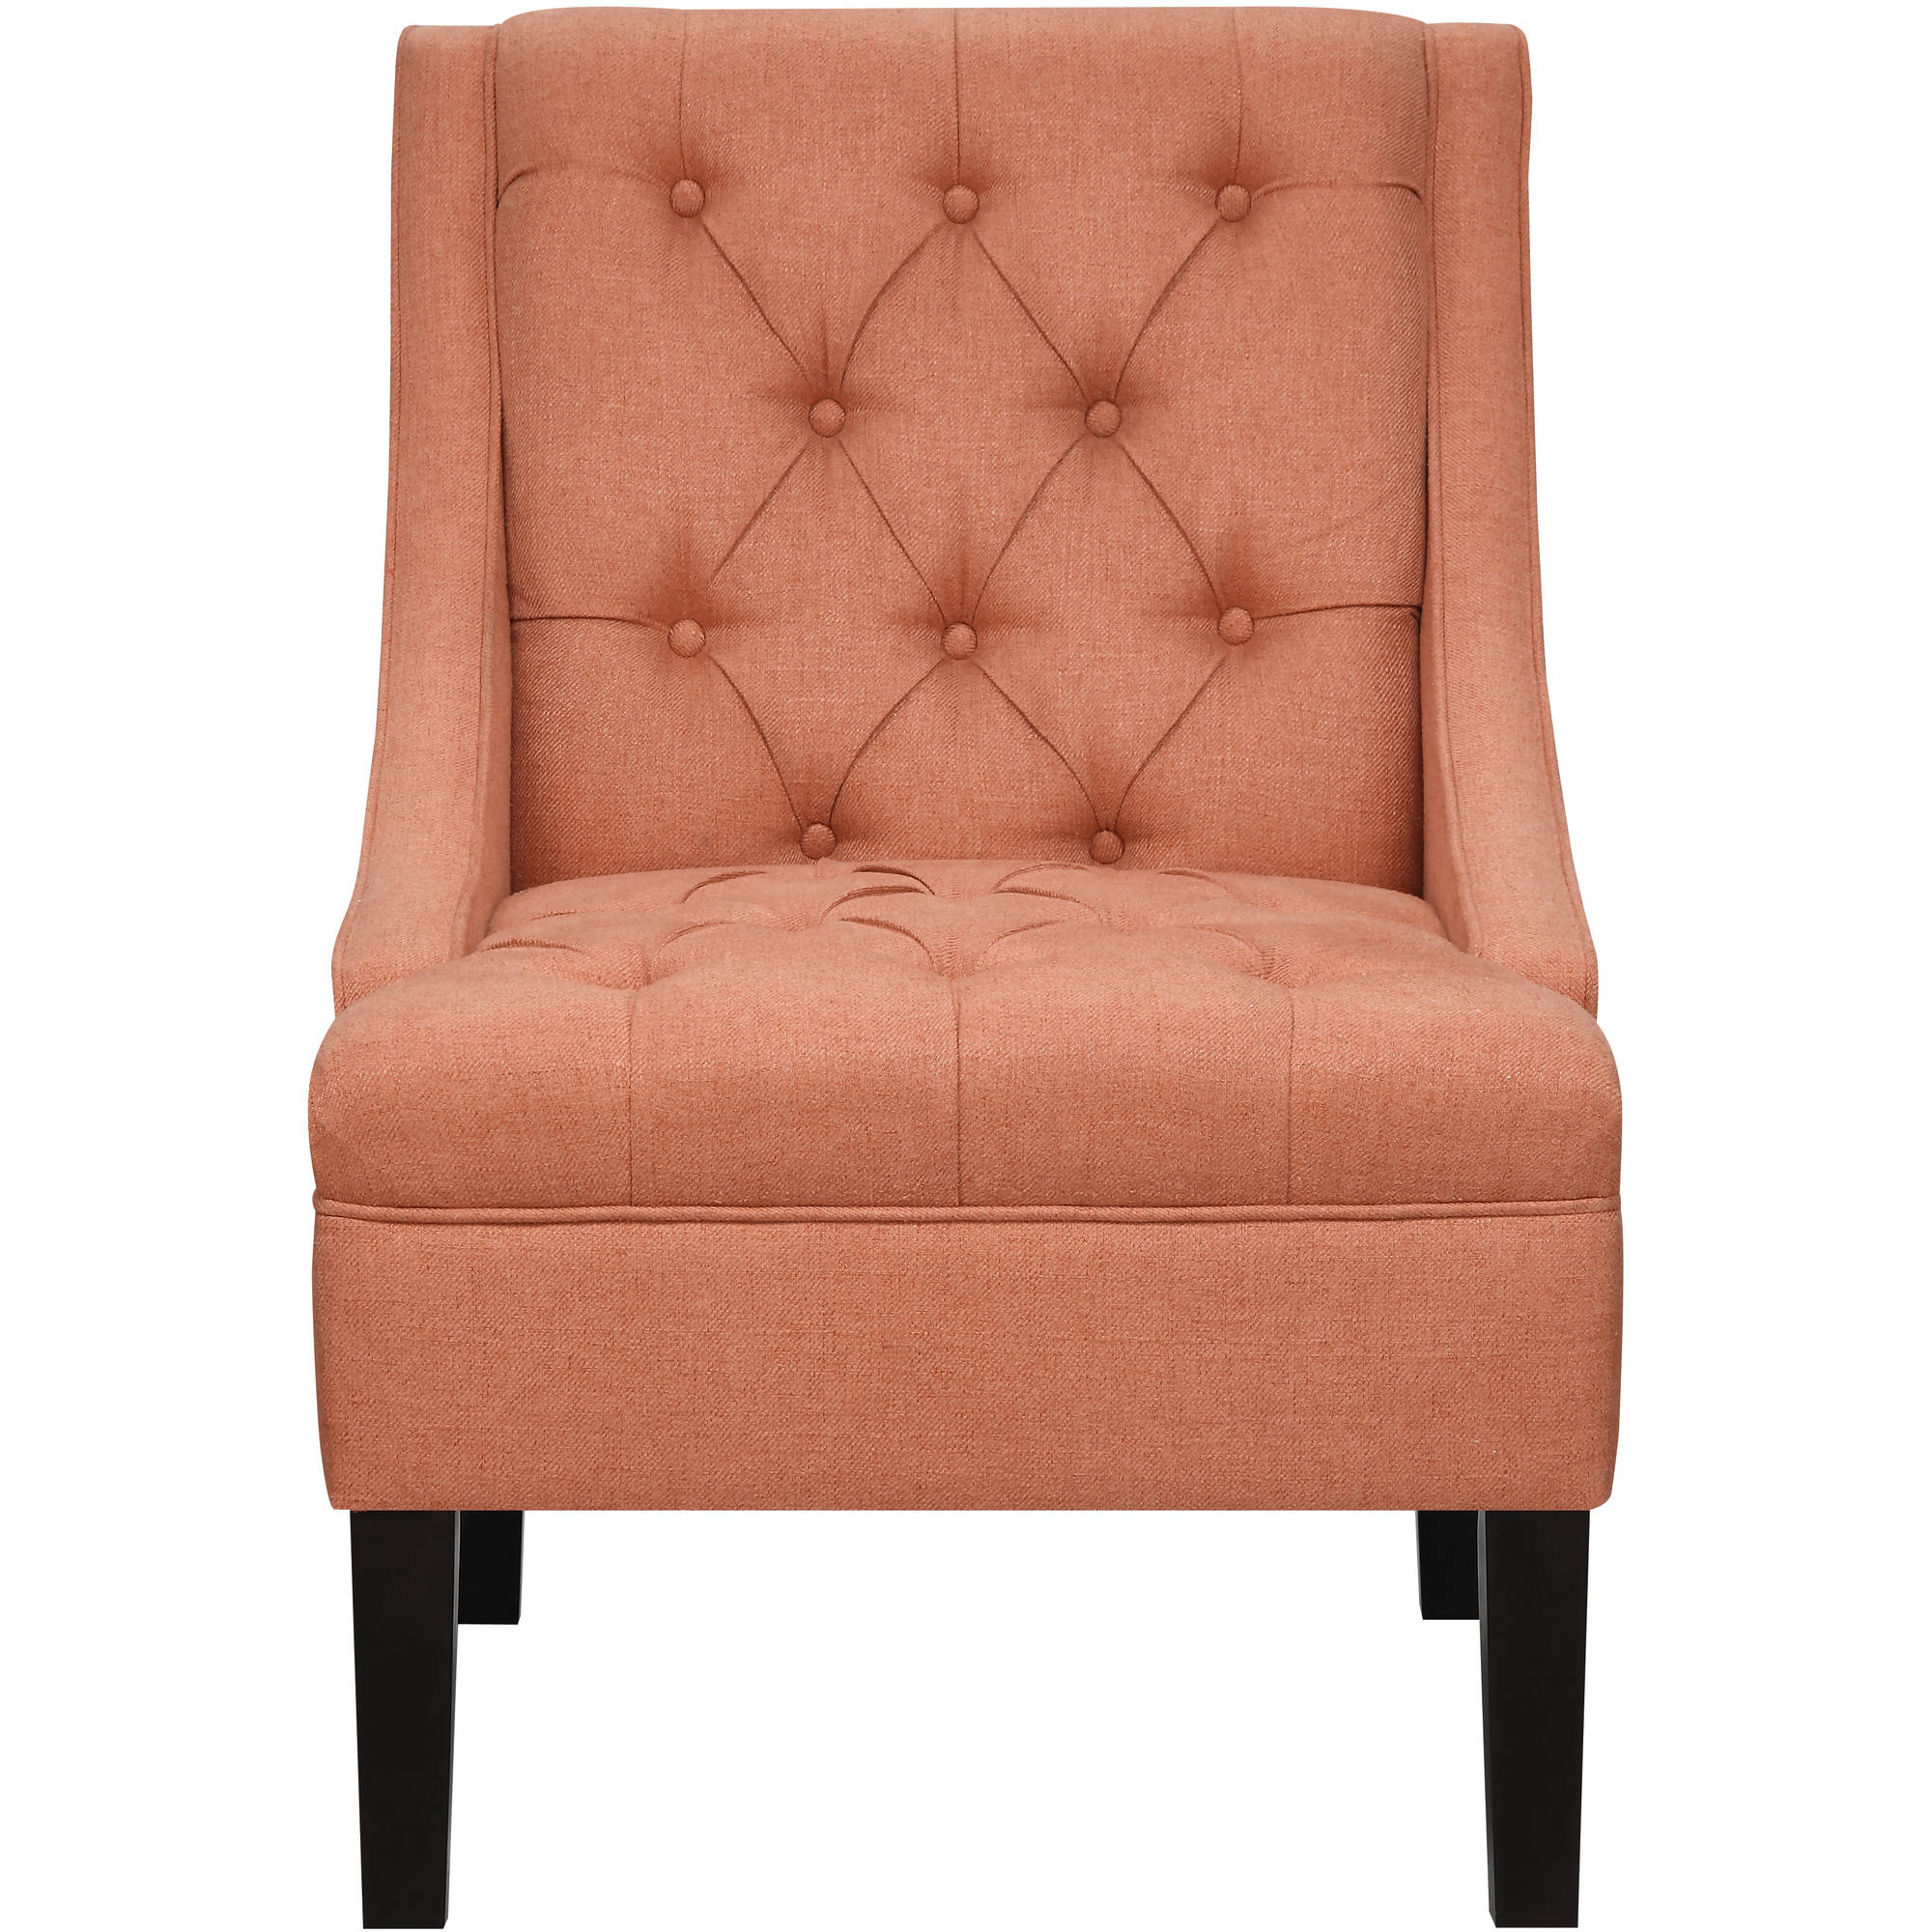 Scoop Arm Button Tufted Accent Chair in Sateen Salmon